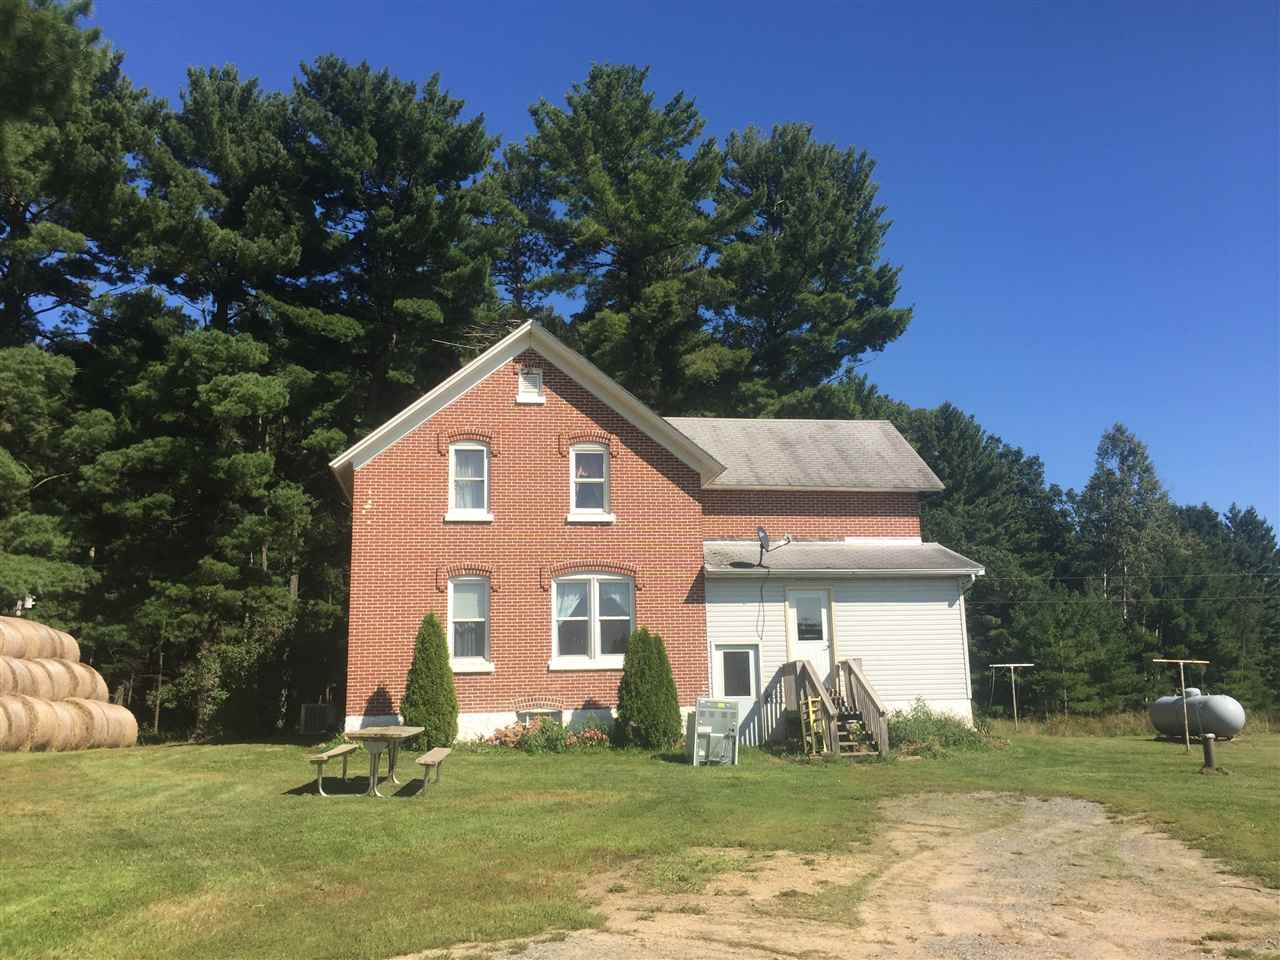 719 N Meads Ave, Levis, WI 54456